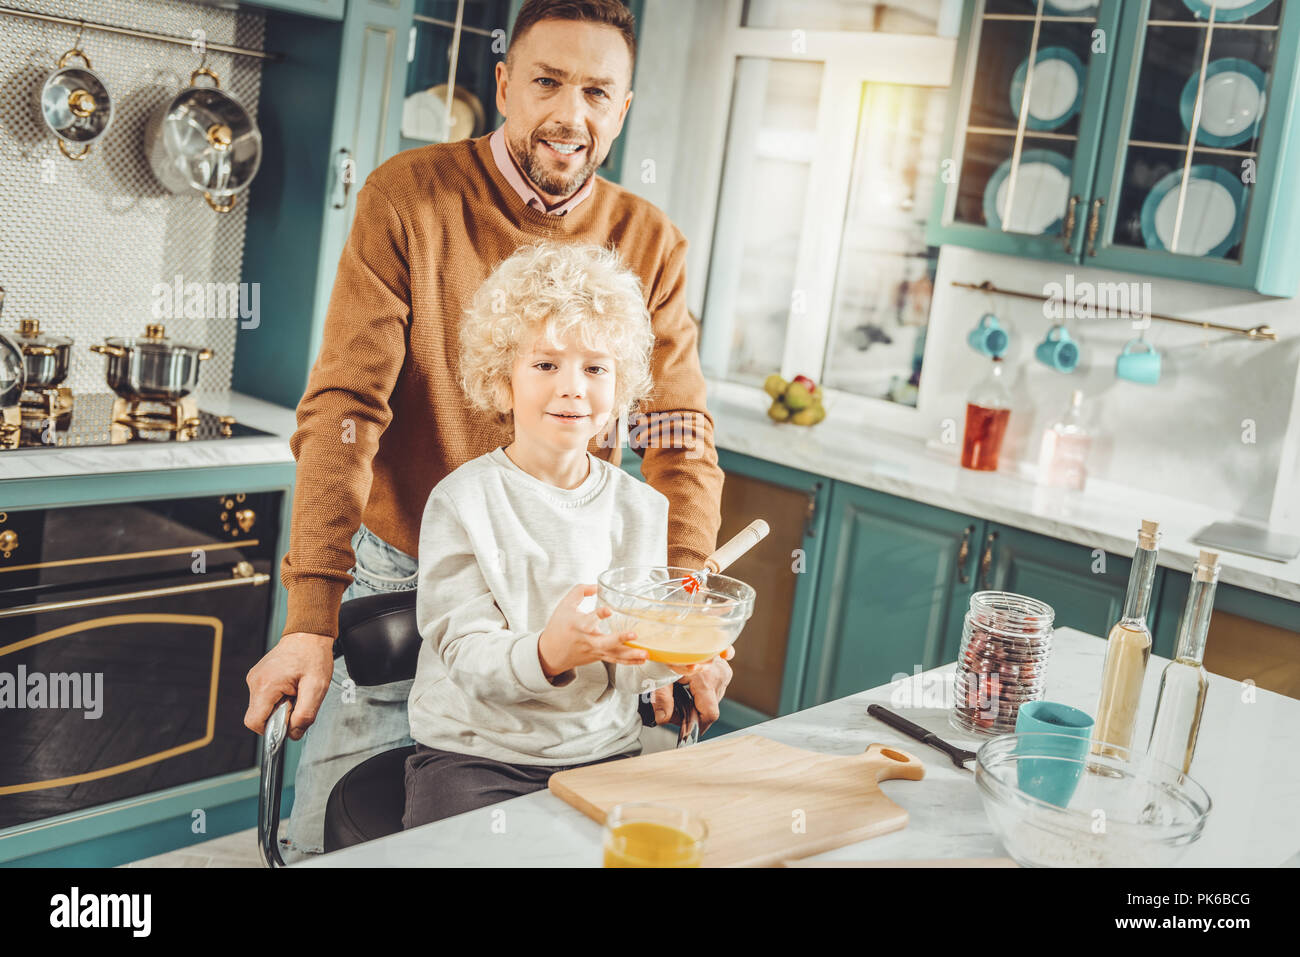 Curly blonde-haired boy holding bowl with whipped eggs - Stock Image